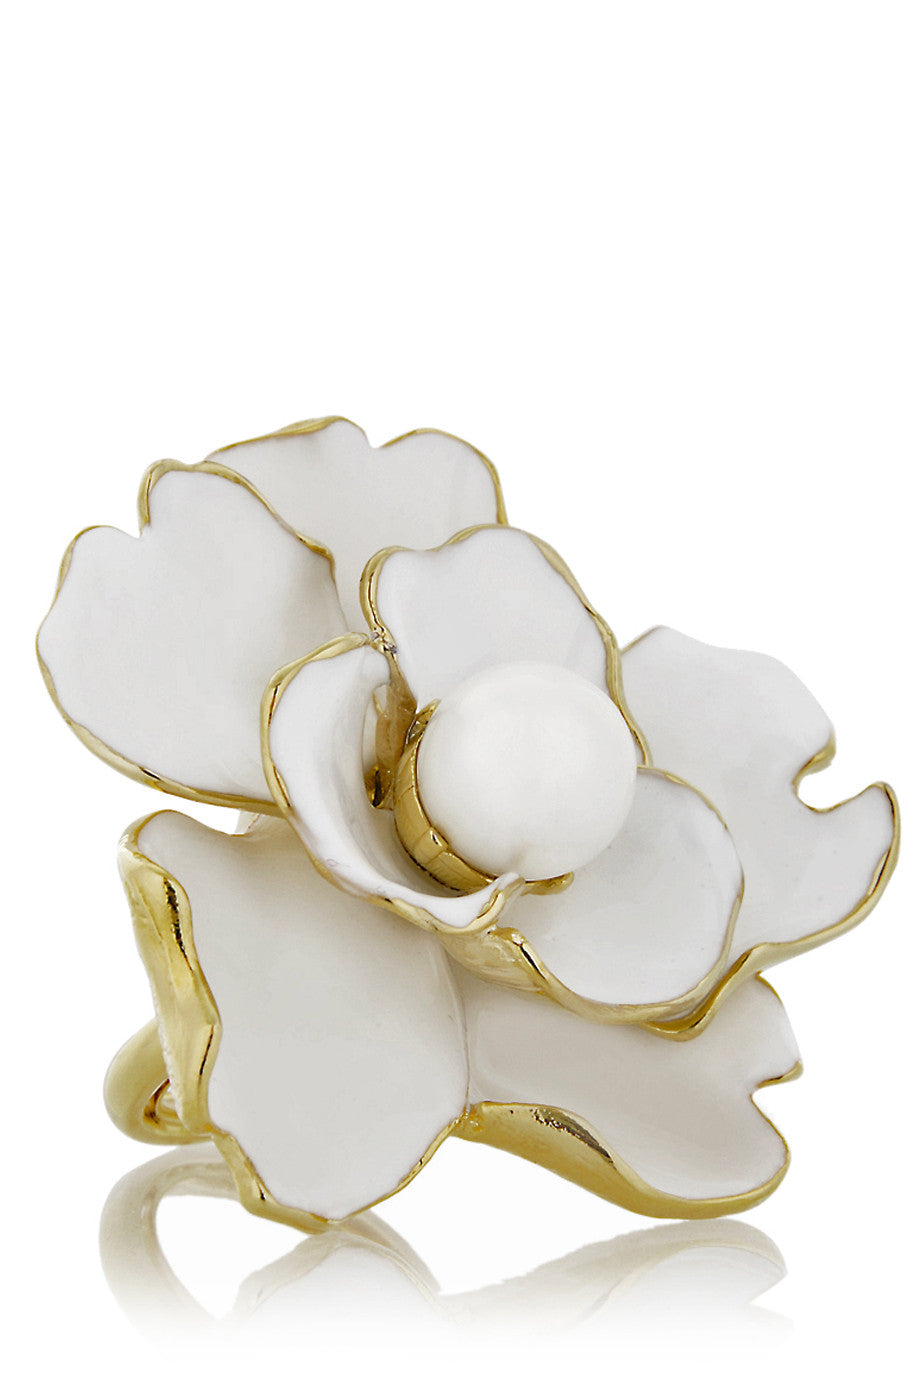 Kenneth Jay Lane Golden Pearly Flower Cocktail Ring 5gssNi